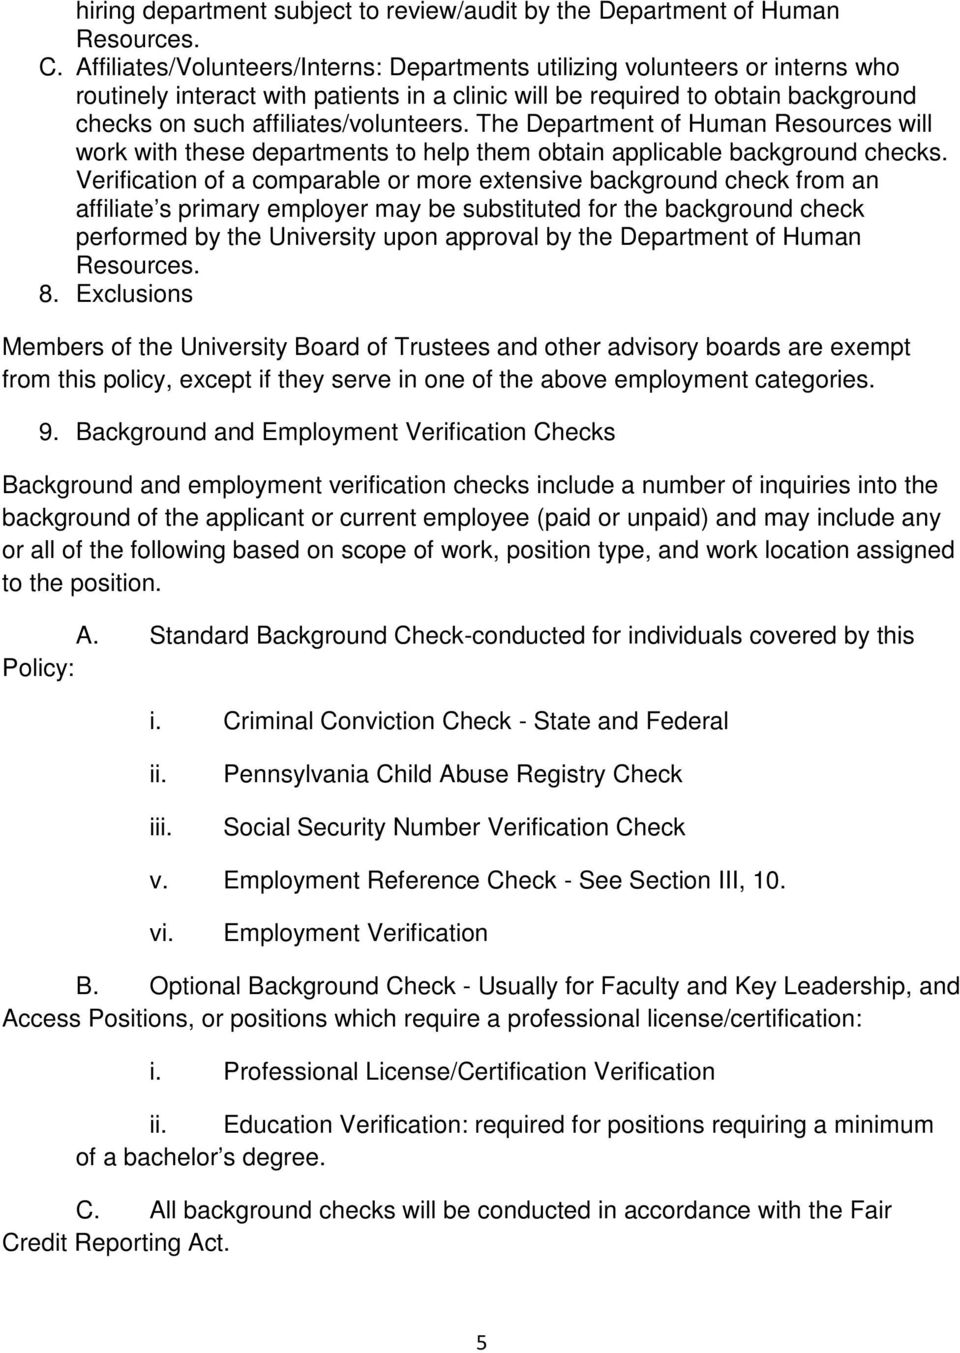 The Department of Human Resources will work with these departments to help them obtain applicable background checks.